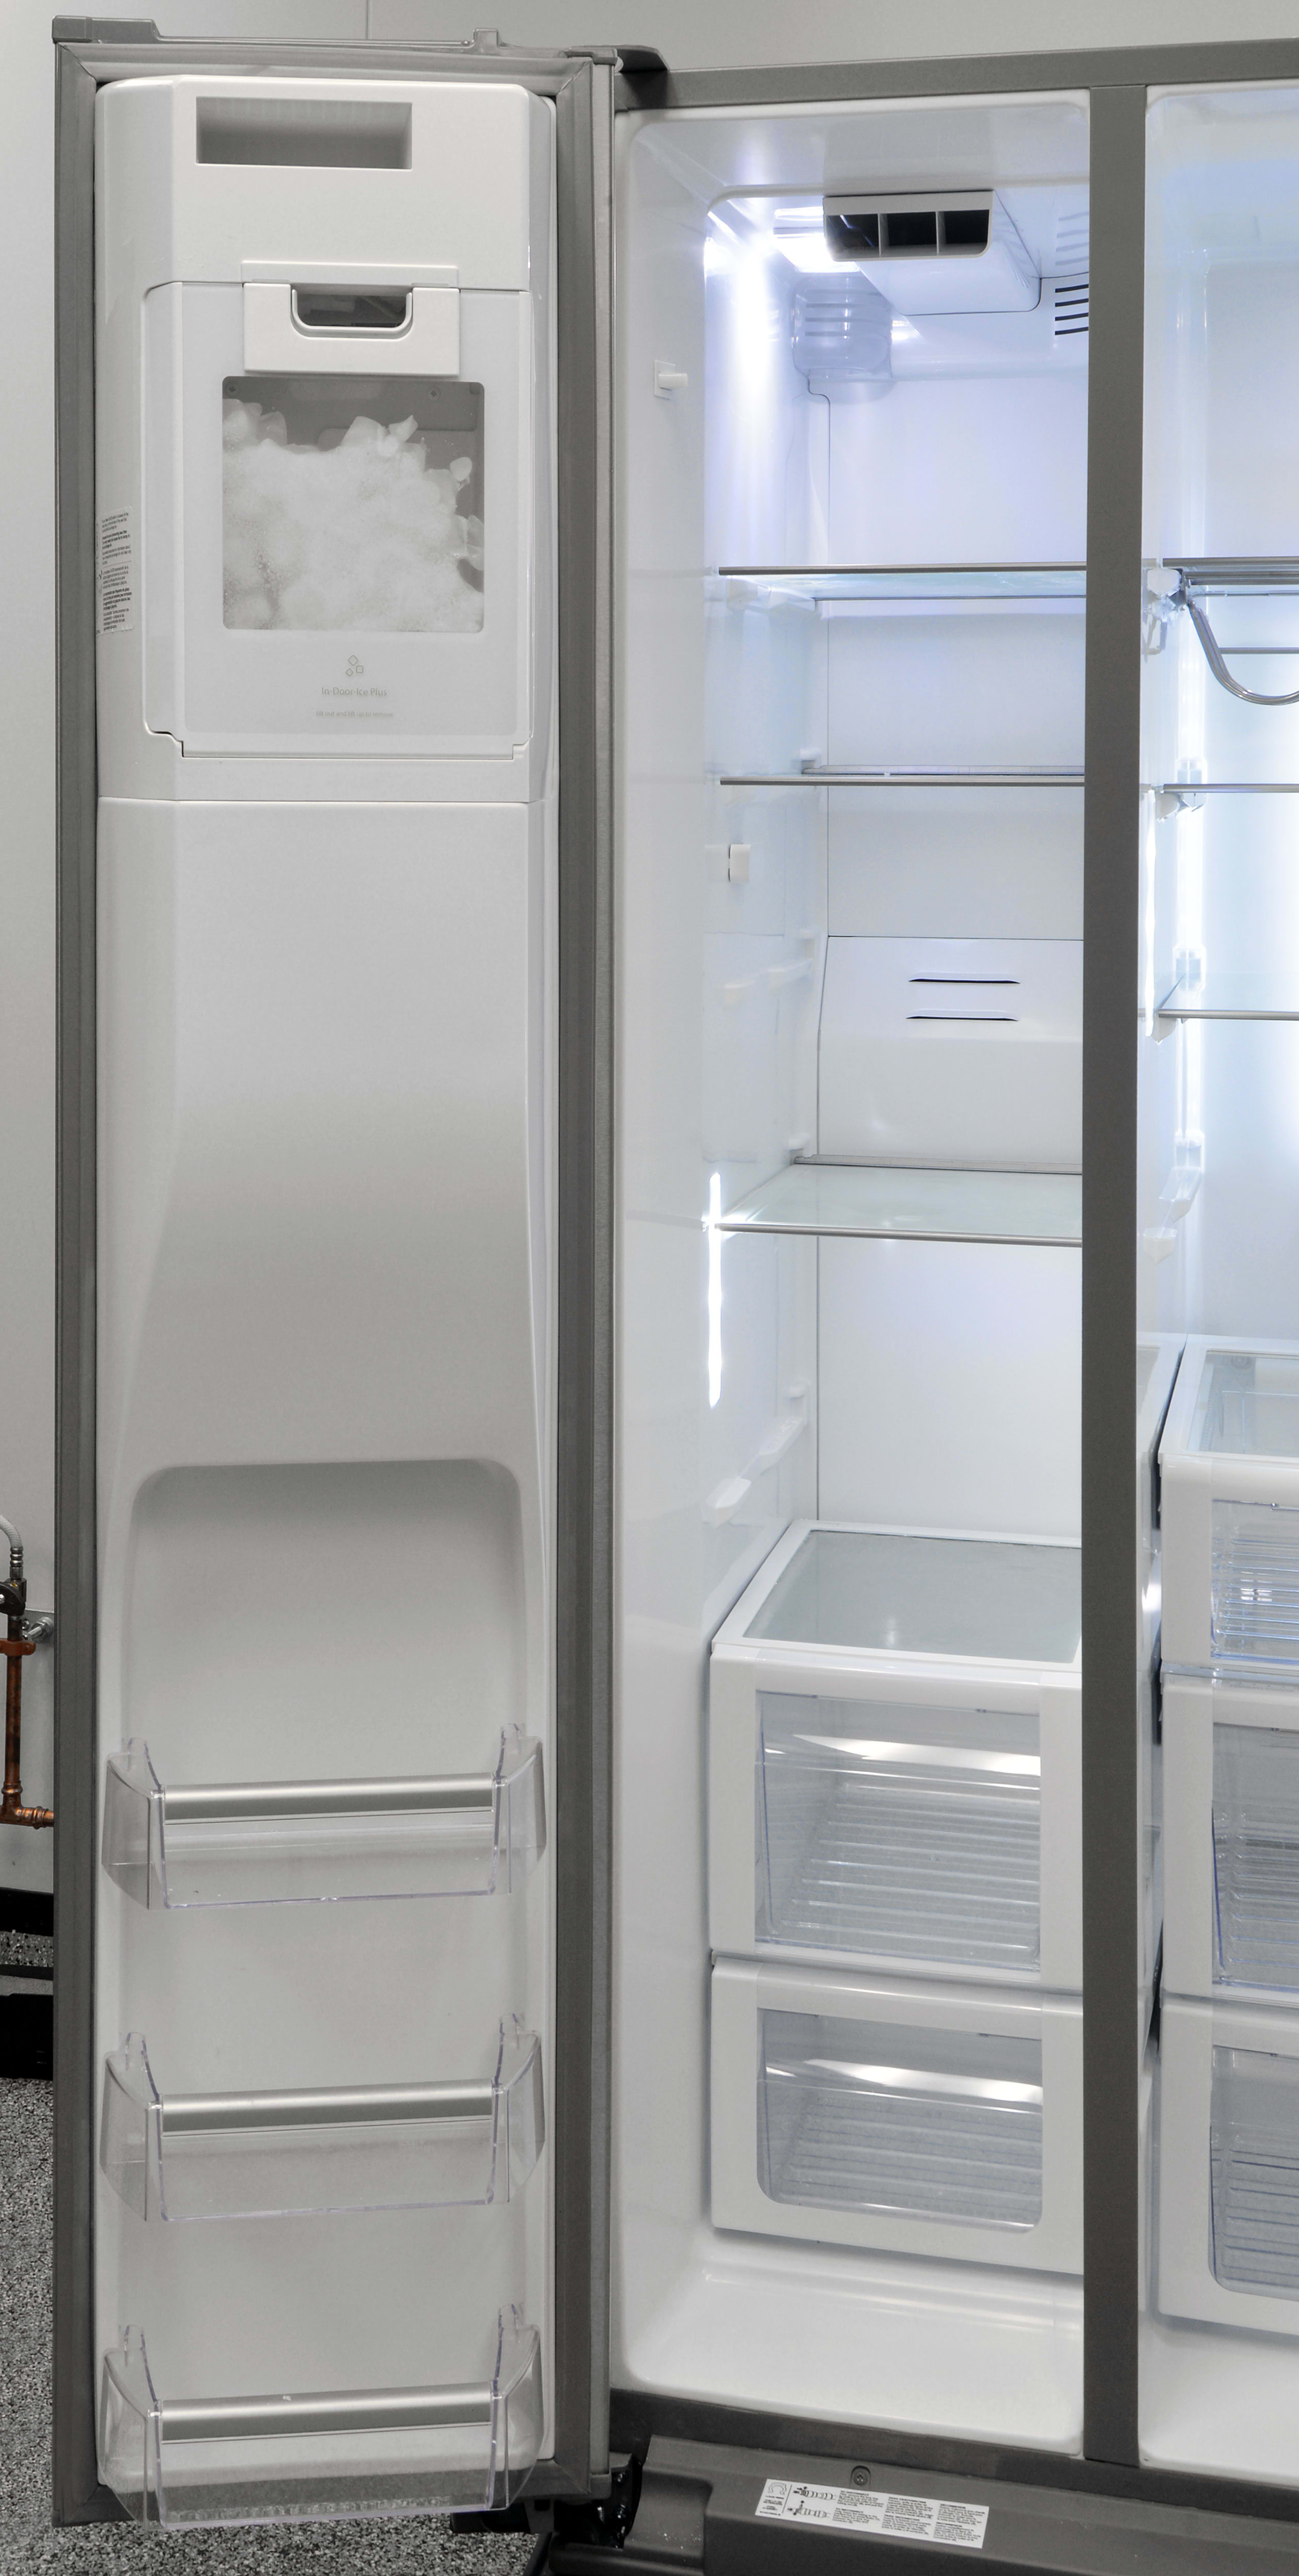 The Whirlpool WRS975SIDM's freezer section may not have a ton of door storage, but the main cavity has plenty of shelves and drawers for easy organization.